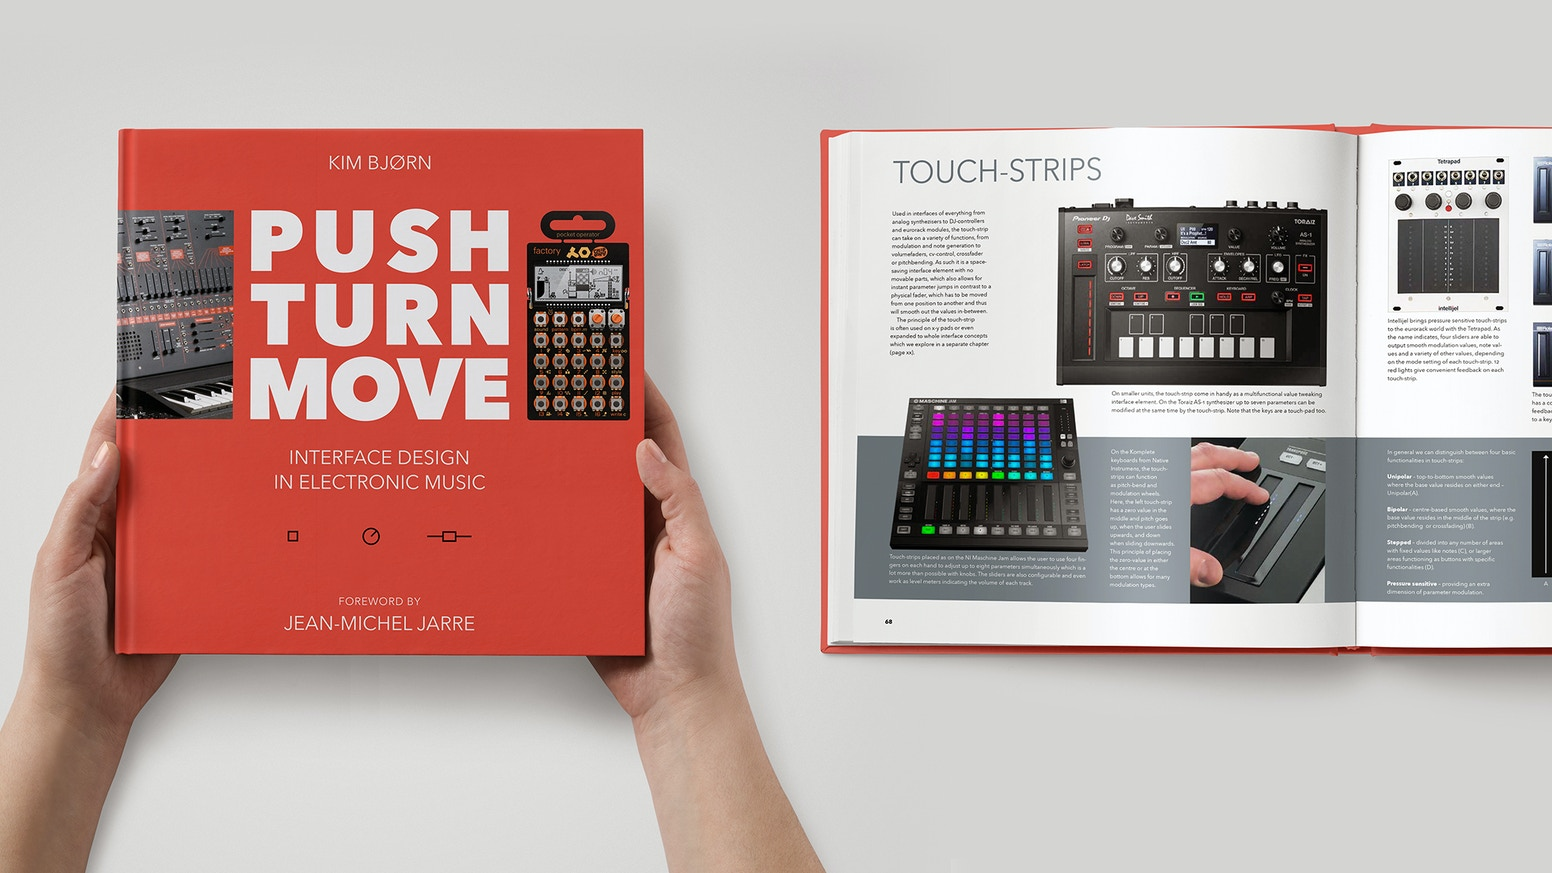 Meet the artists, designers, makers and their instruments in this new book and see how they have shaped the world of electronic music.